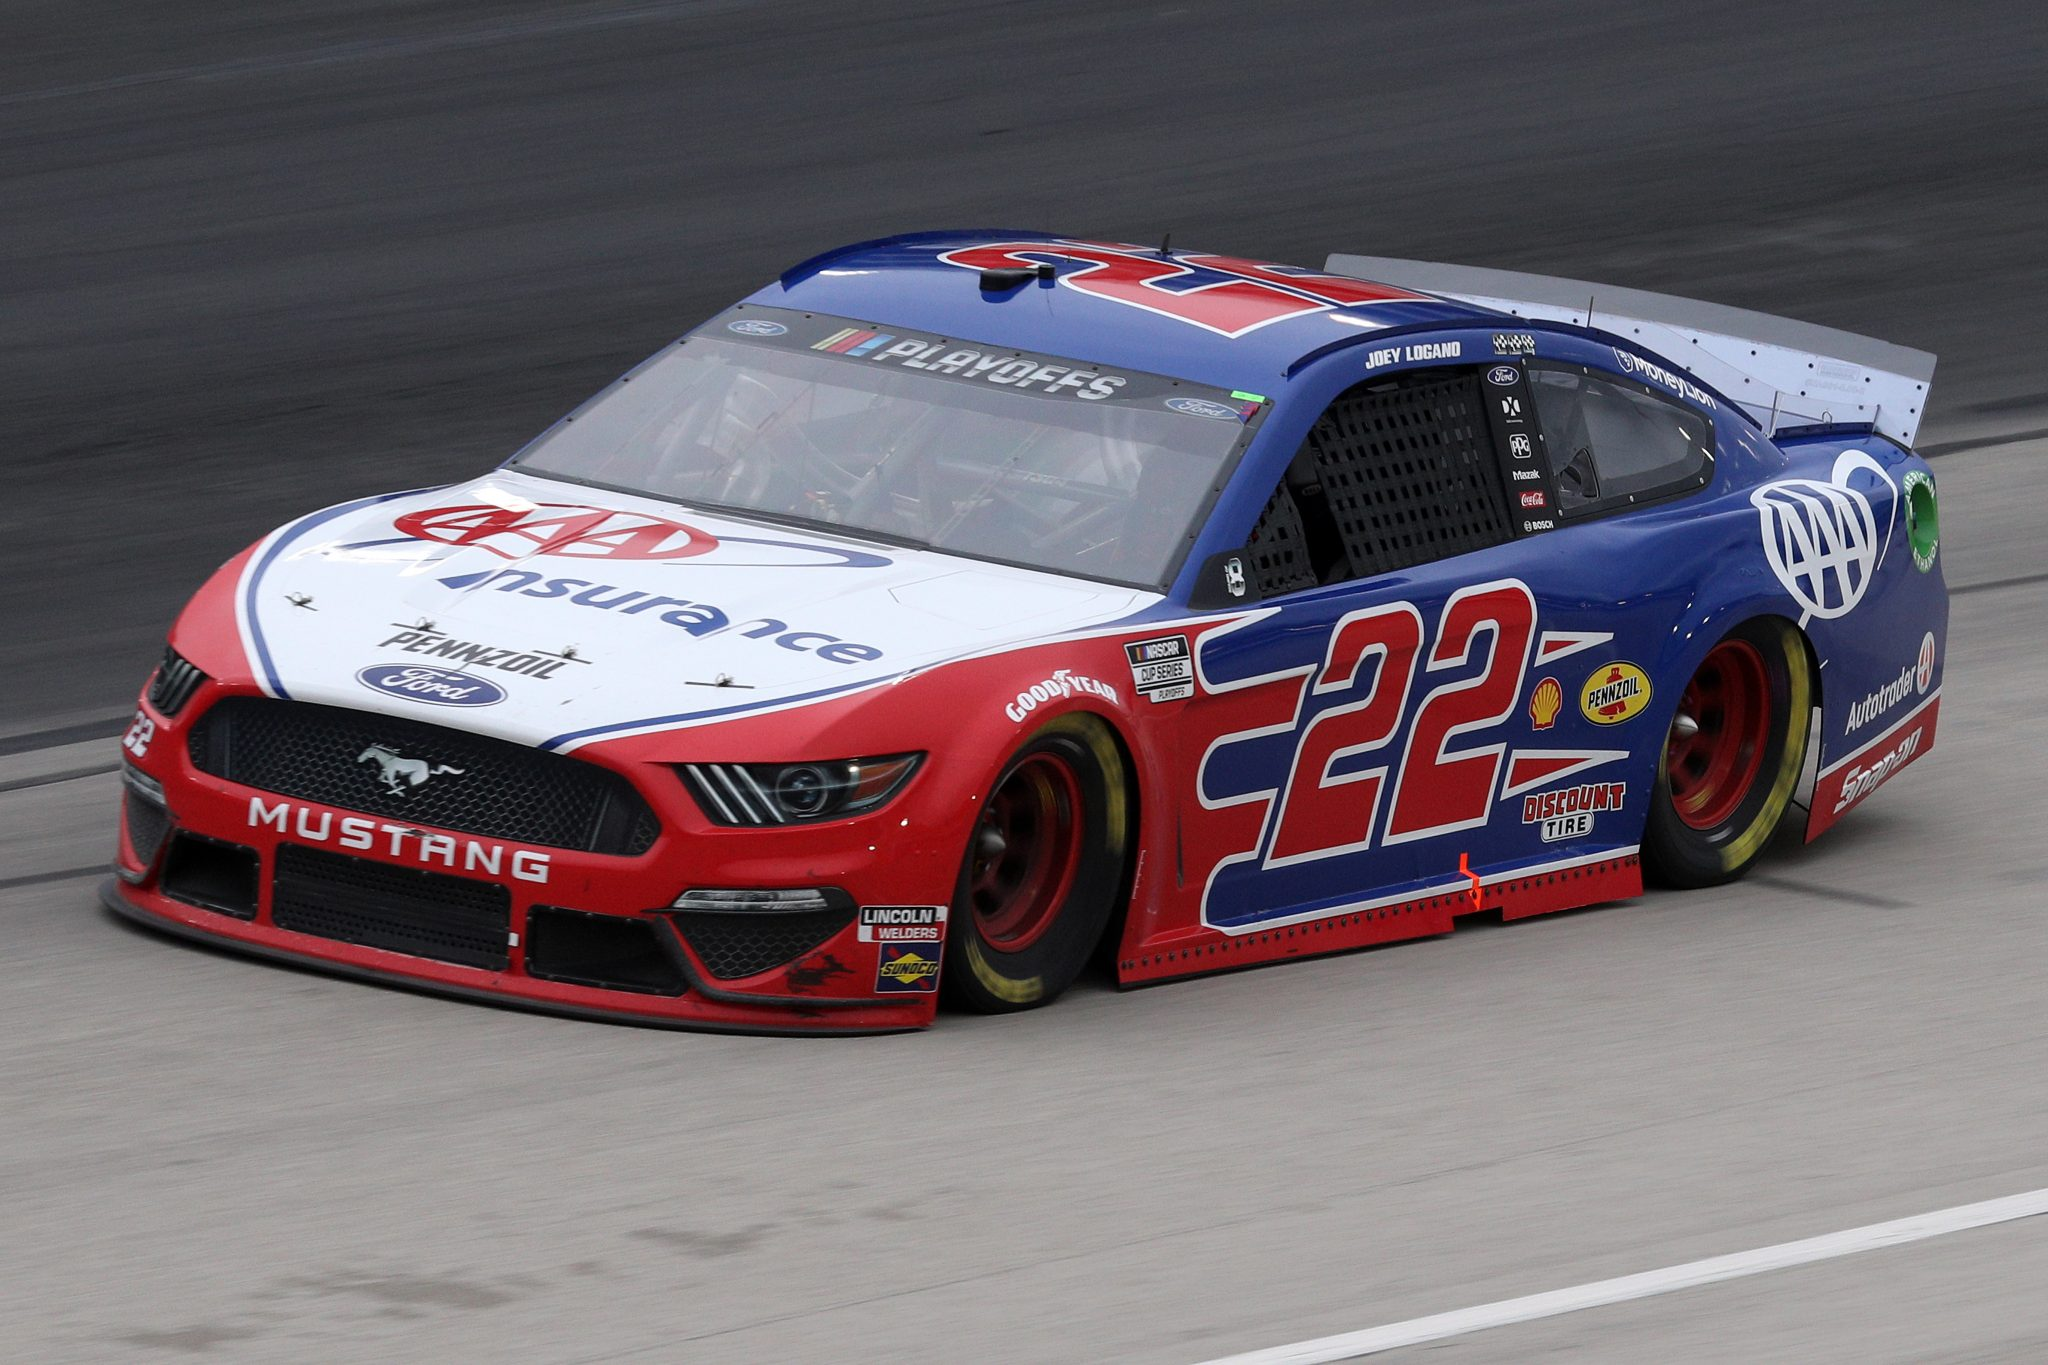 FORT WORTH, TEXAS - OCTOBER 28: Joey Logano, driver of the #22 AAA Insurance Ford, drives during the NASCAR Cup Series Autotrader EchoPark Automotive 500 at Texas Motor Speedway on October 28, 2020 in Fort Worth, Texas. (Photo by Chris Graythen/Getty Images) | Getty Images